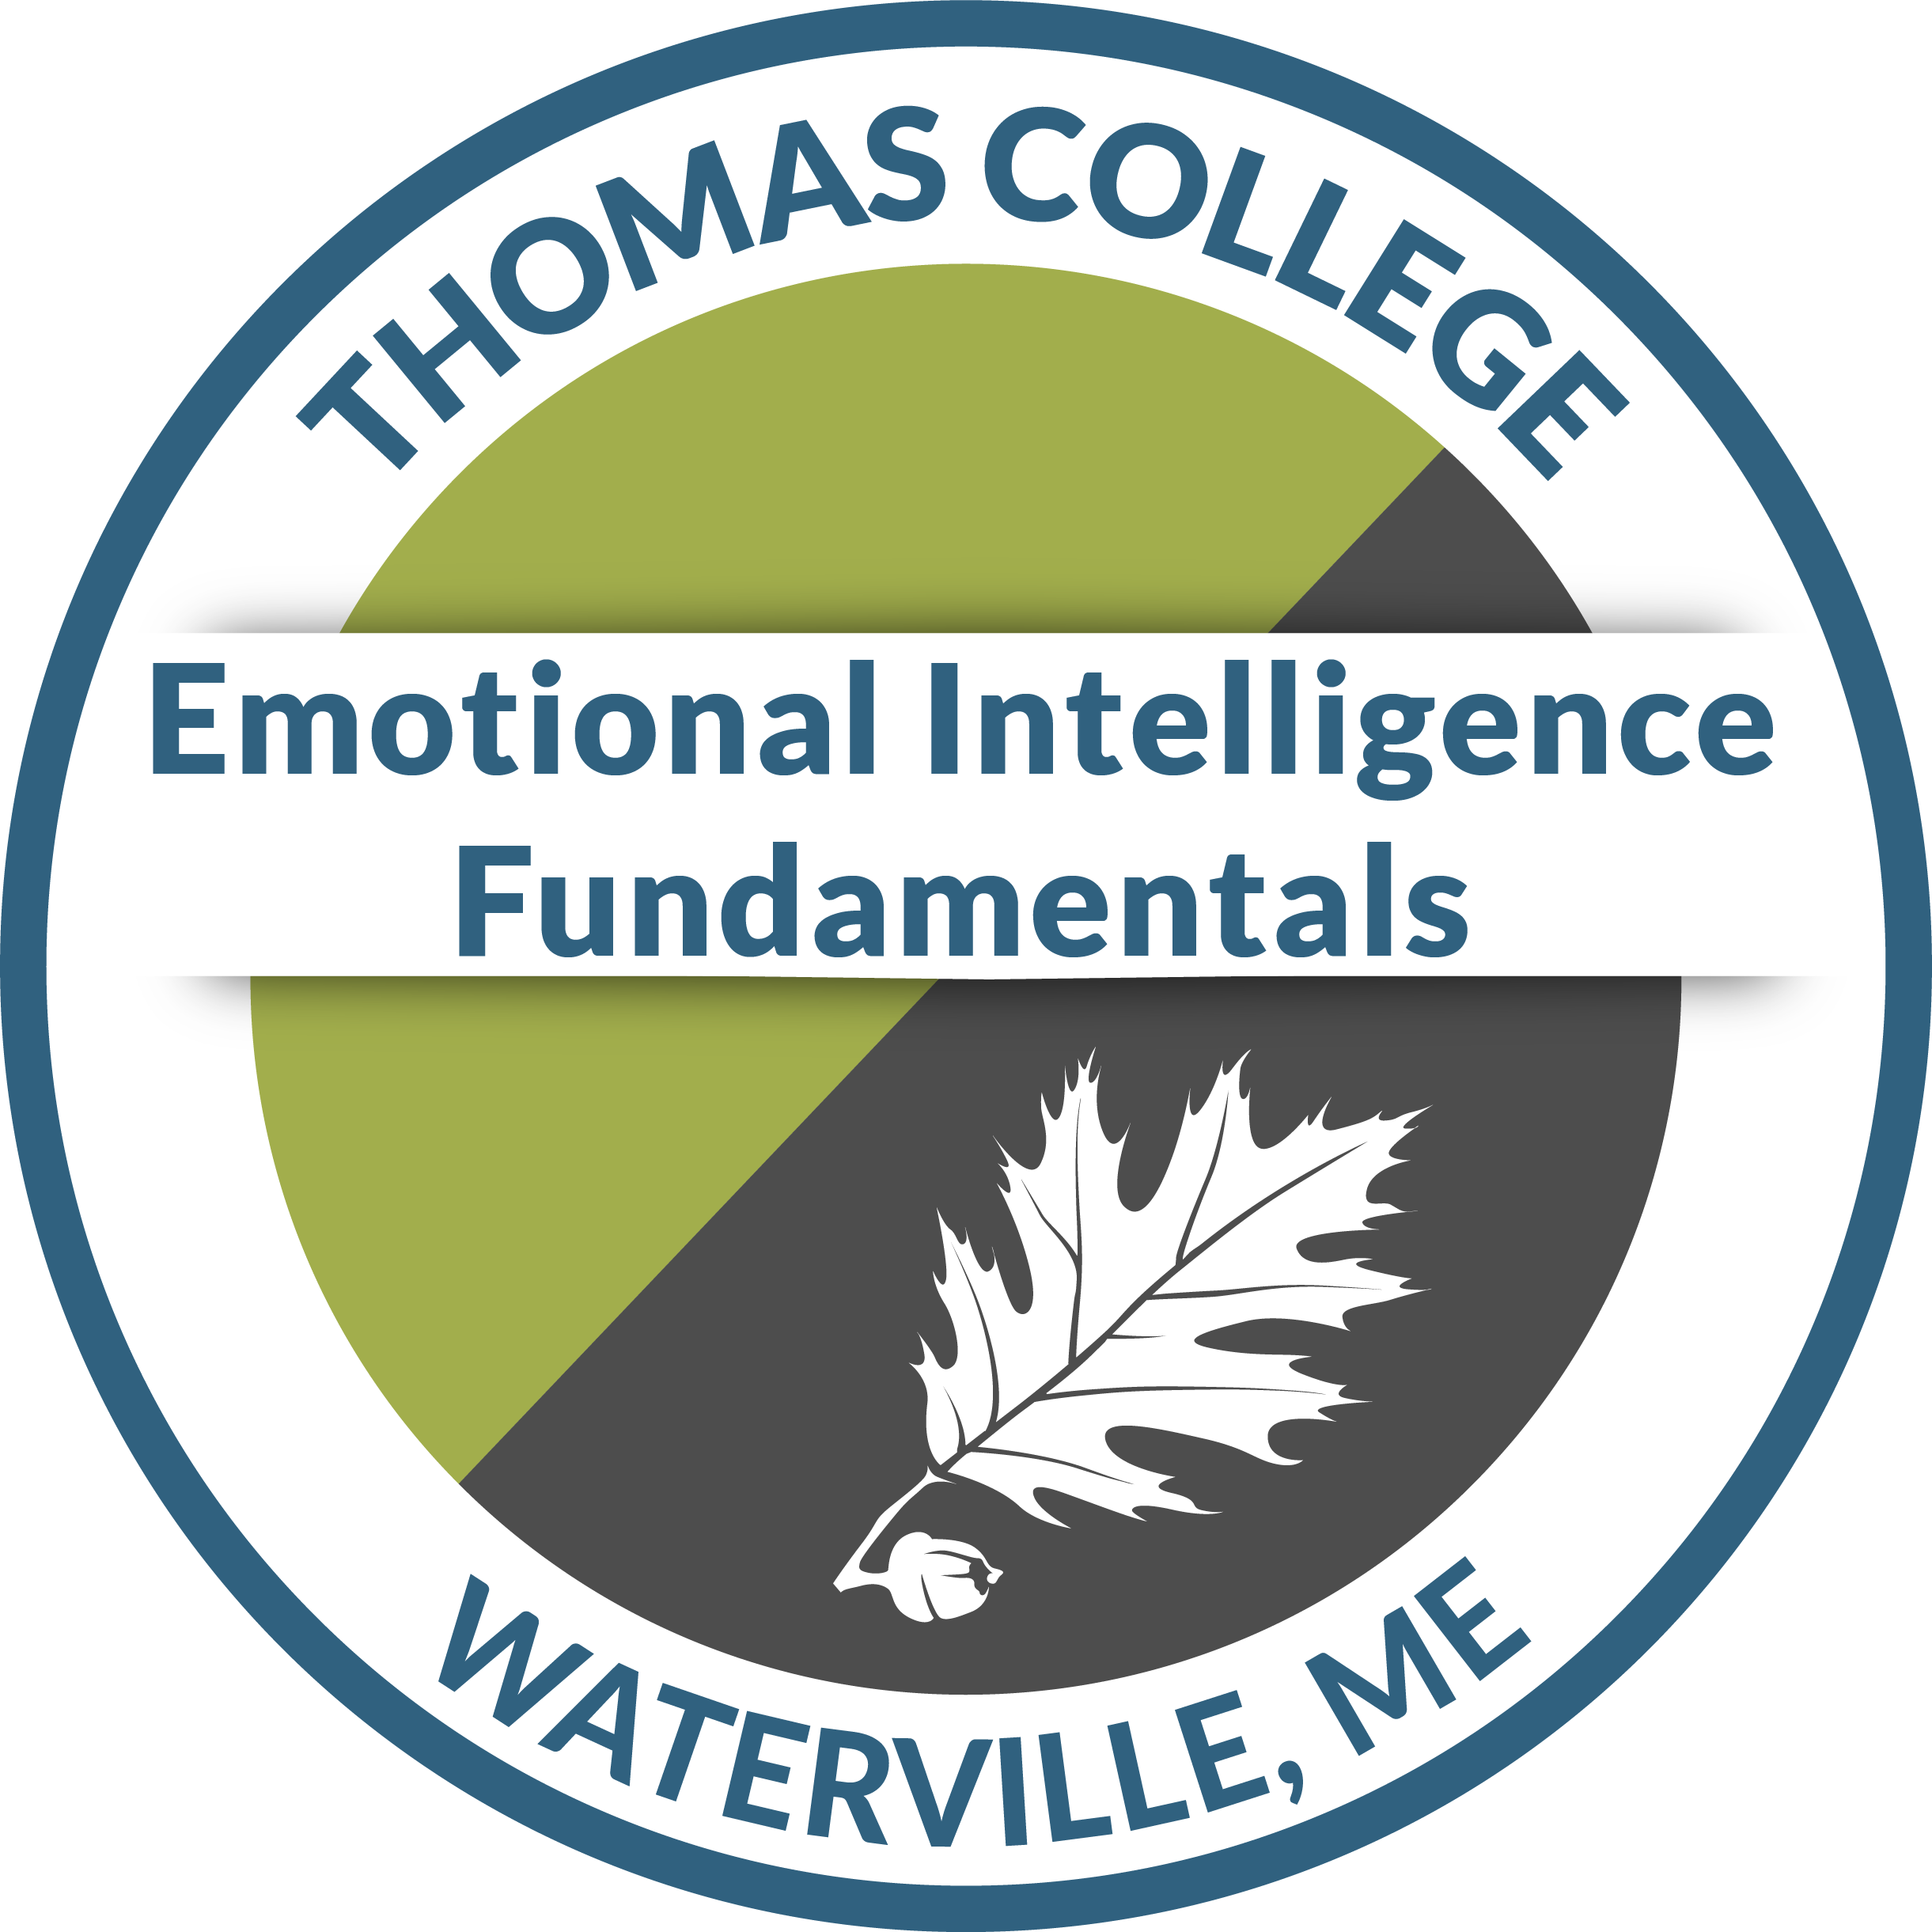 Emotional Intelligence Fundamentals